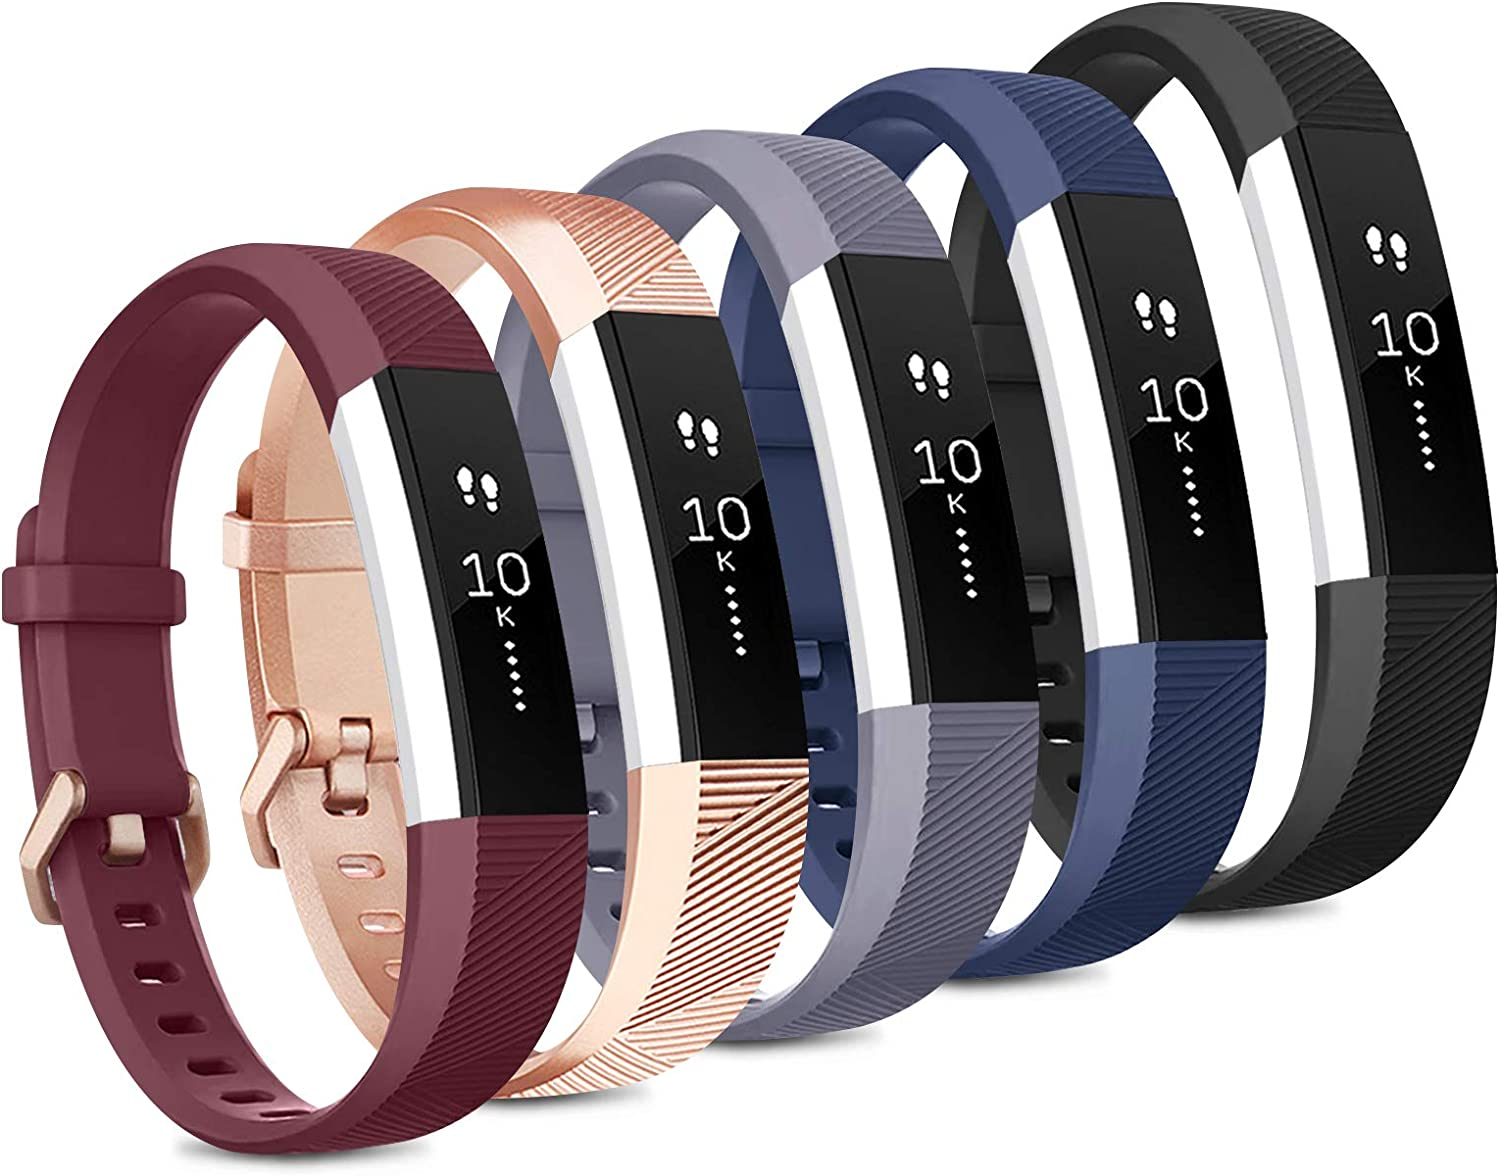 [5 Pack] Sport Bands Compatible with Fitbit Alta HR Bands and Fitbit Alta Bands Women Men, Classic Soft Silicone Replacement Wristbands Straps for Fitbit Alta HR/Fitbit Alta (5 Pack A, Small)